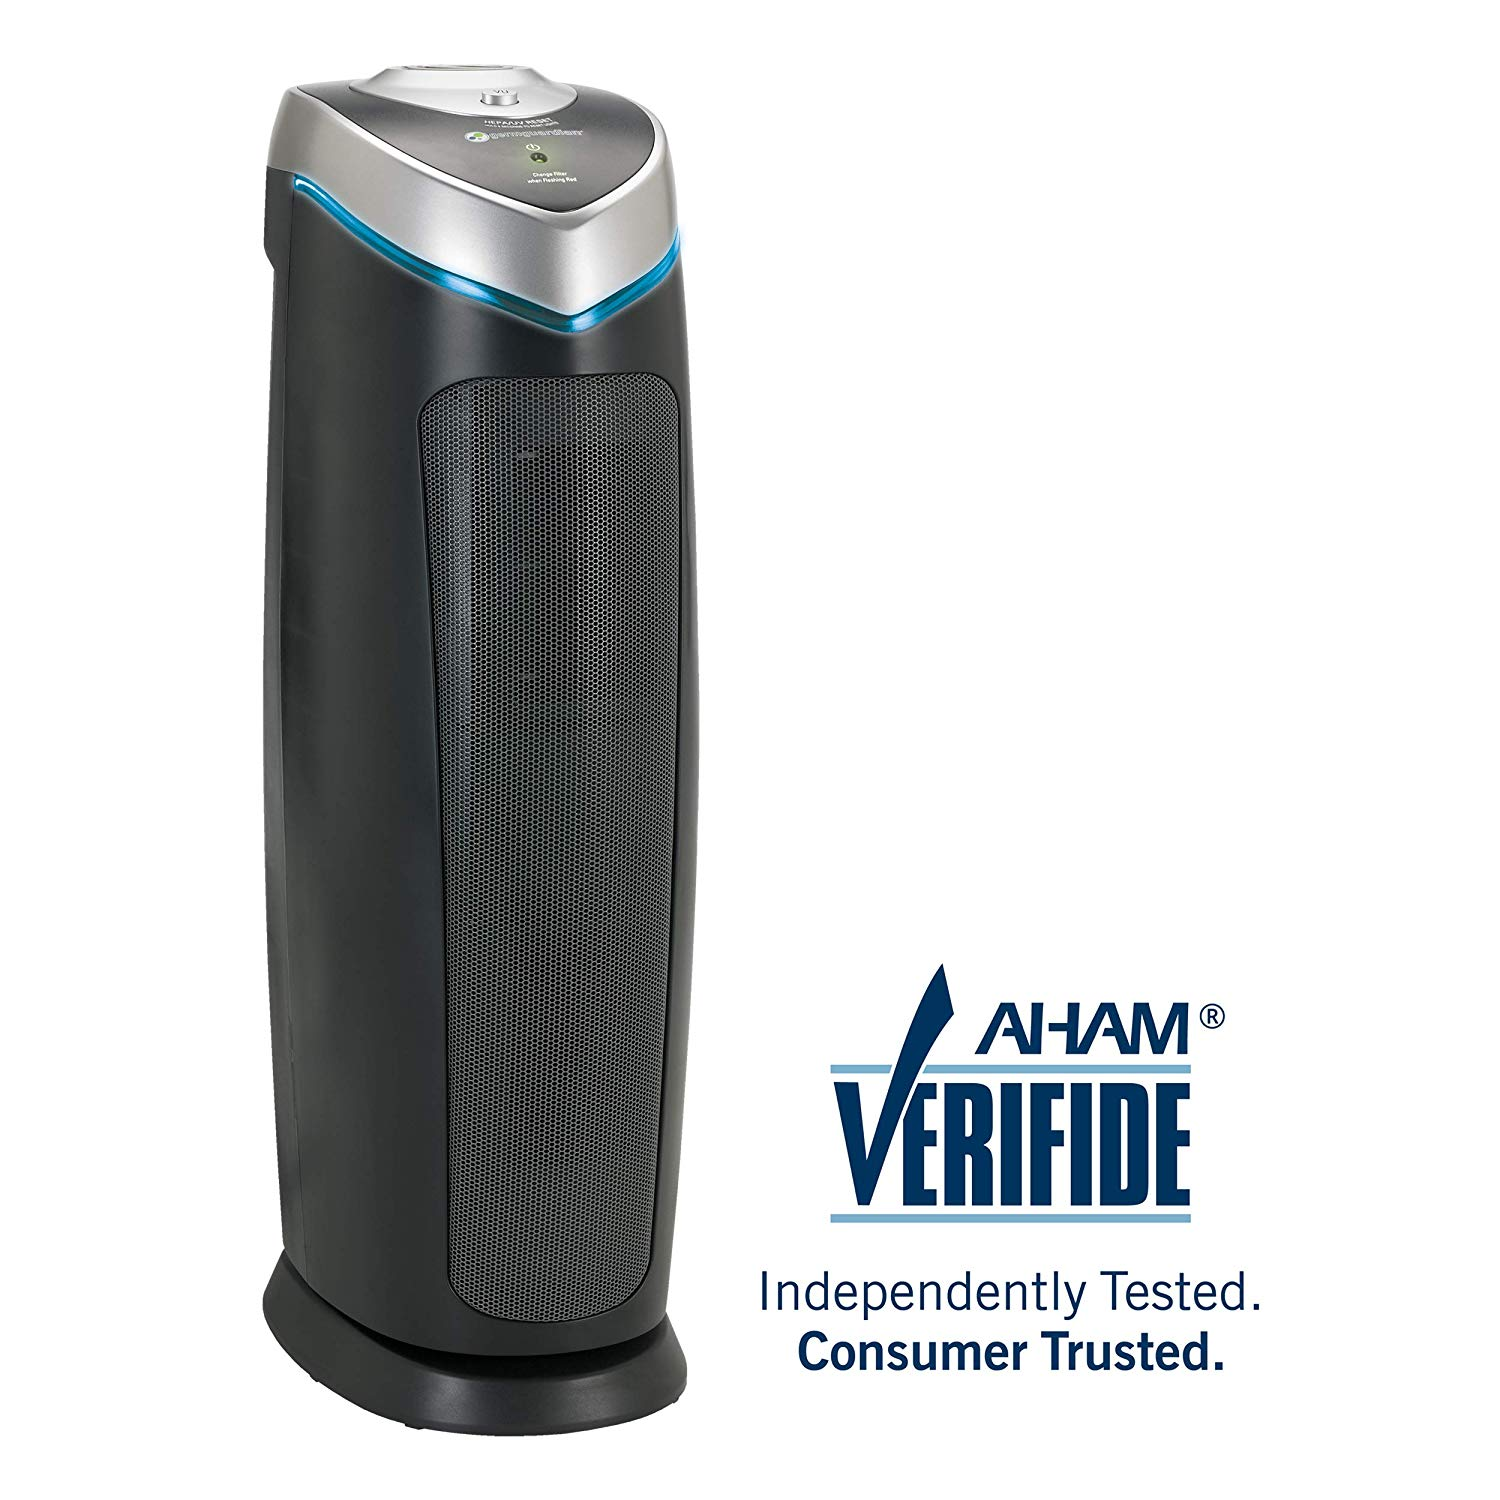 """GermGuardian AC4825 22"""" 3-in-1 Full Room Air Purifier - True HEPA Filter, UVC Sanitizer, Home Air Cleaner Traps Allergens, Smoke, Odors, Mold, Dust, Germs, Pet Dander, 3 Yr Warranty Germ Guardian"""